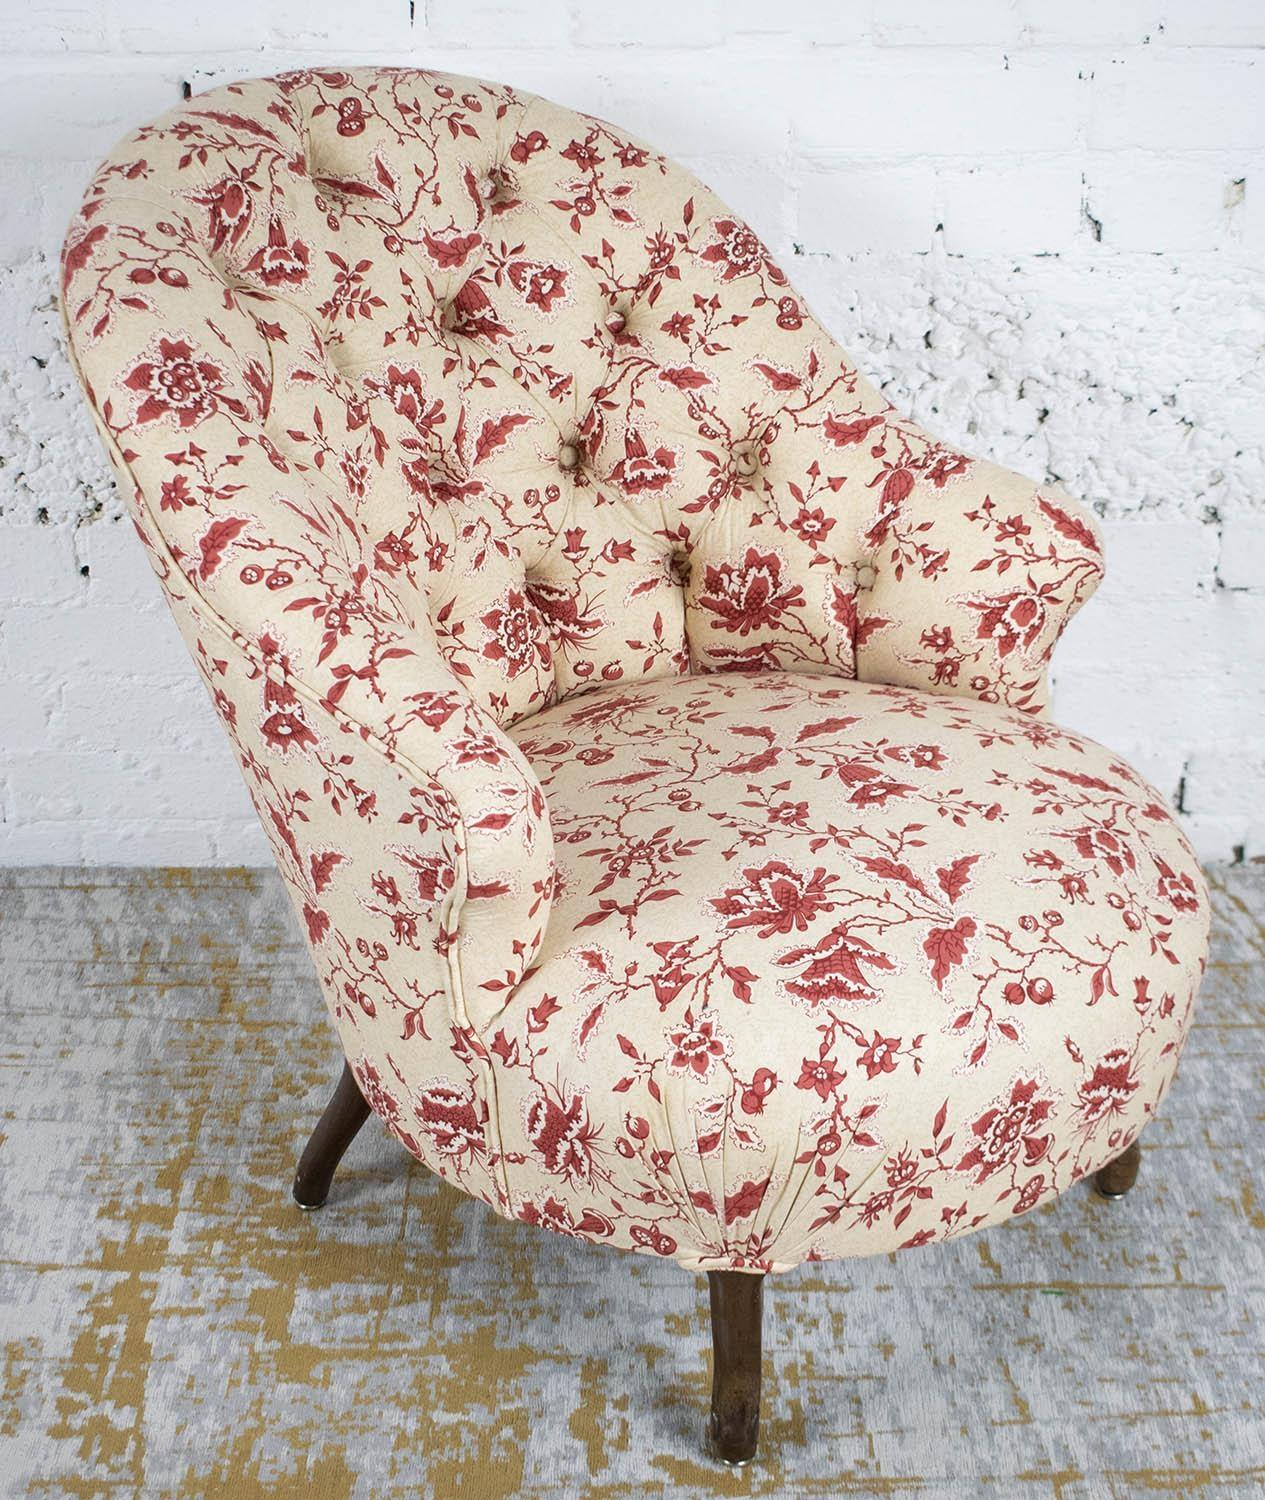 BERGERE, Napoleon III mahogany in cream and red foliate patterned upholstery, 75cm H x 61cm x 73cm.